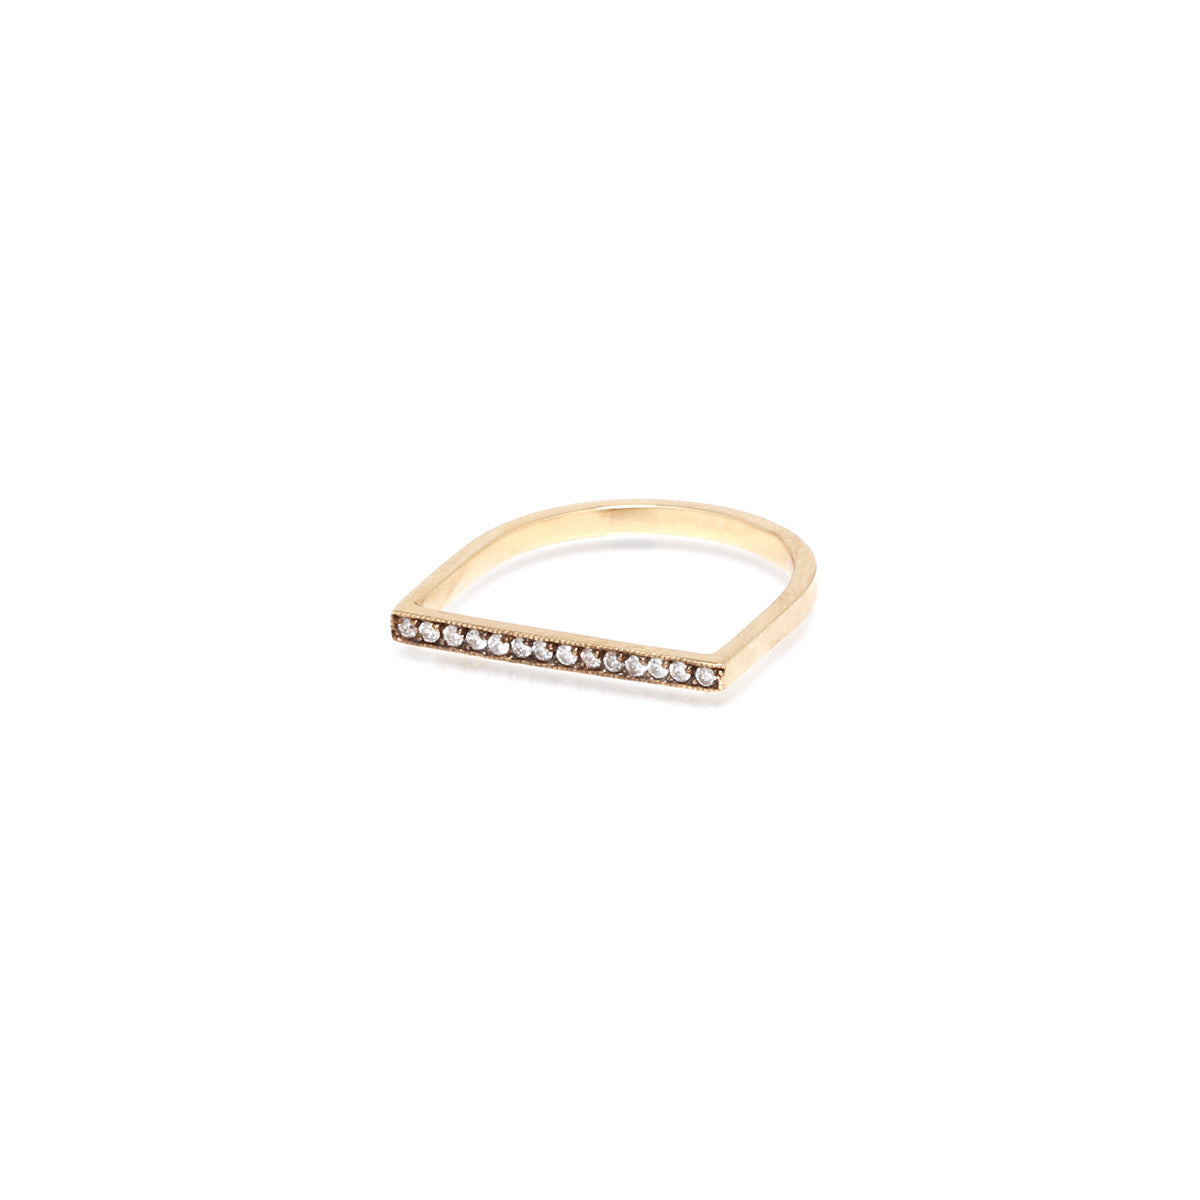 Zoë Chicco 14kt Yellow Gold Flat Top Oxidized Diamond Pave Ring